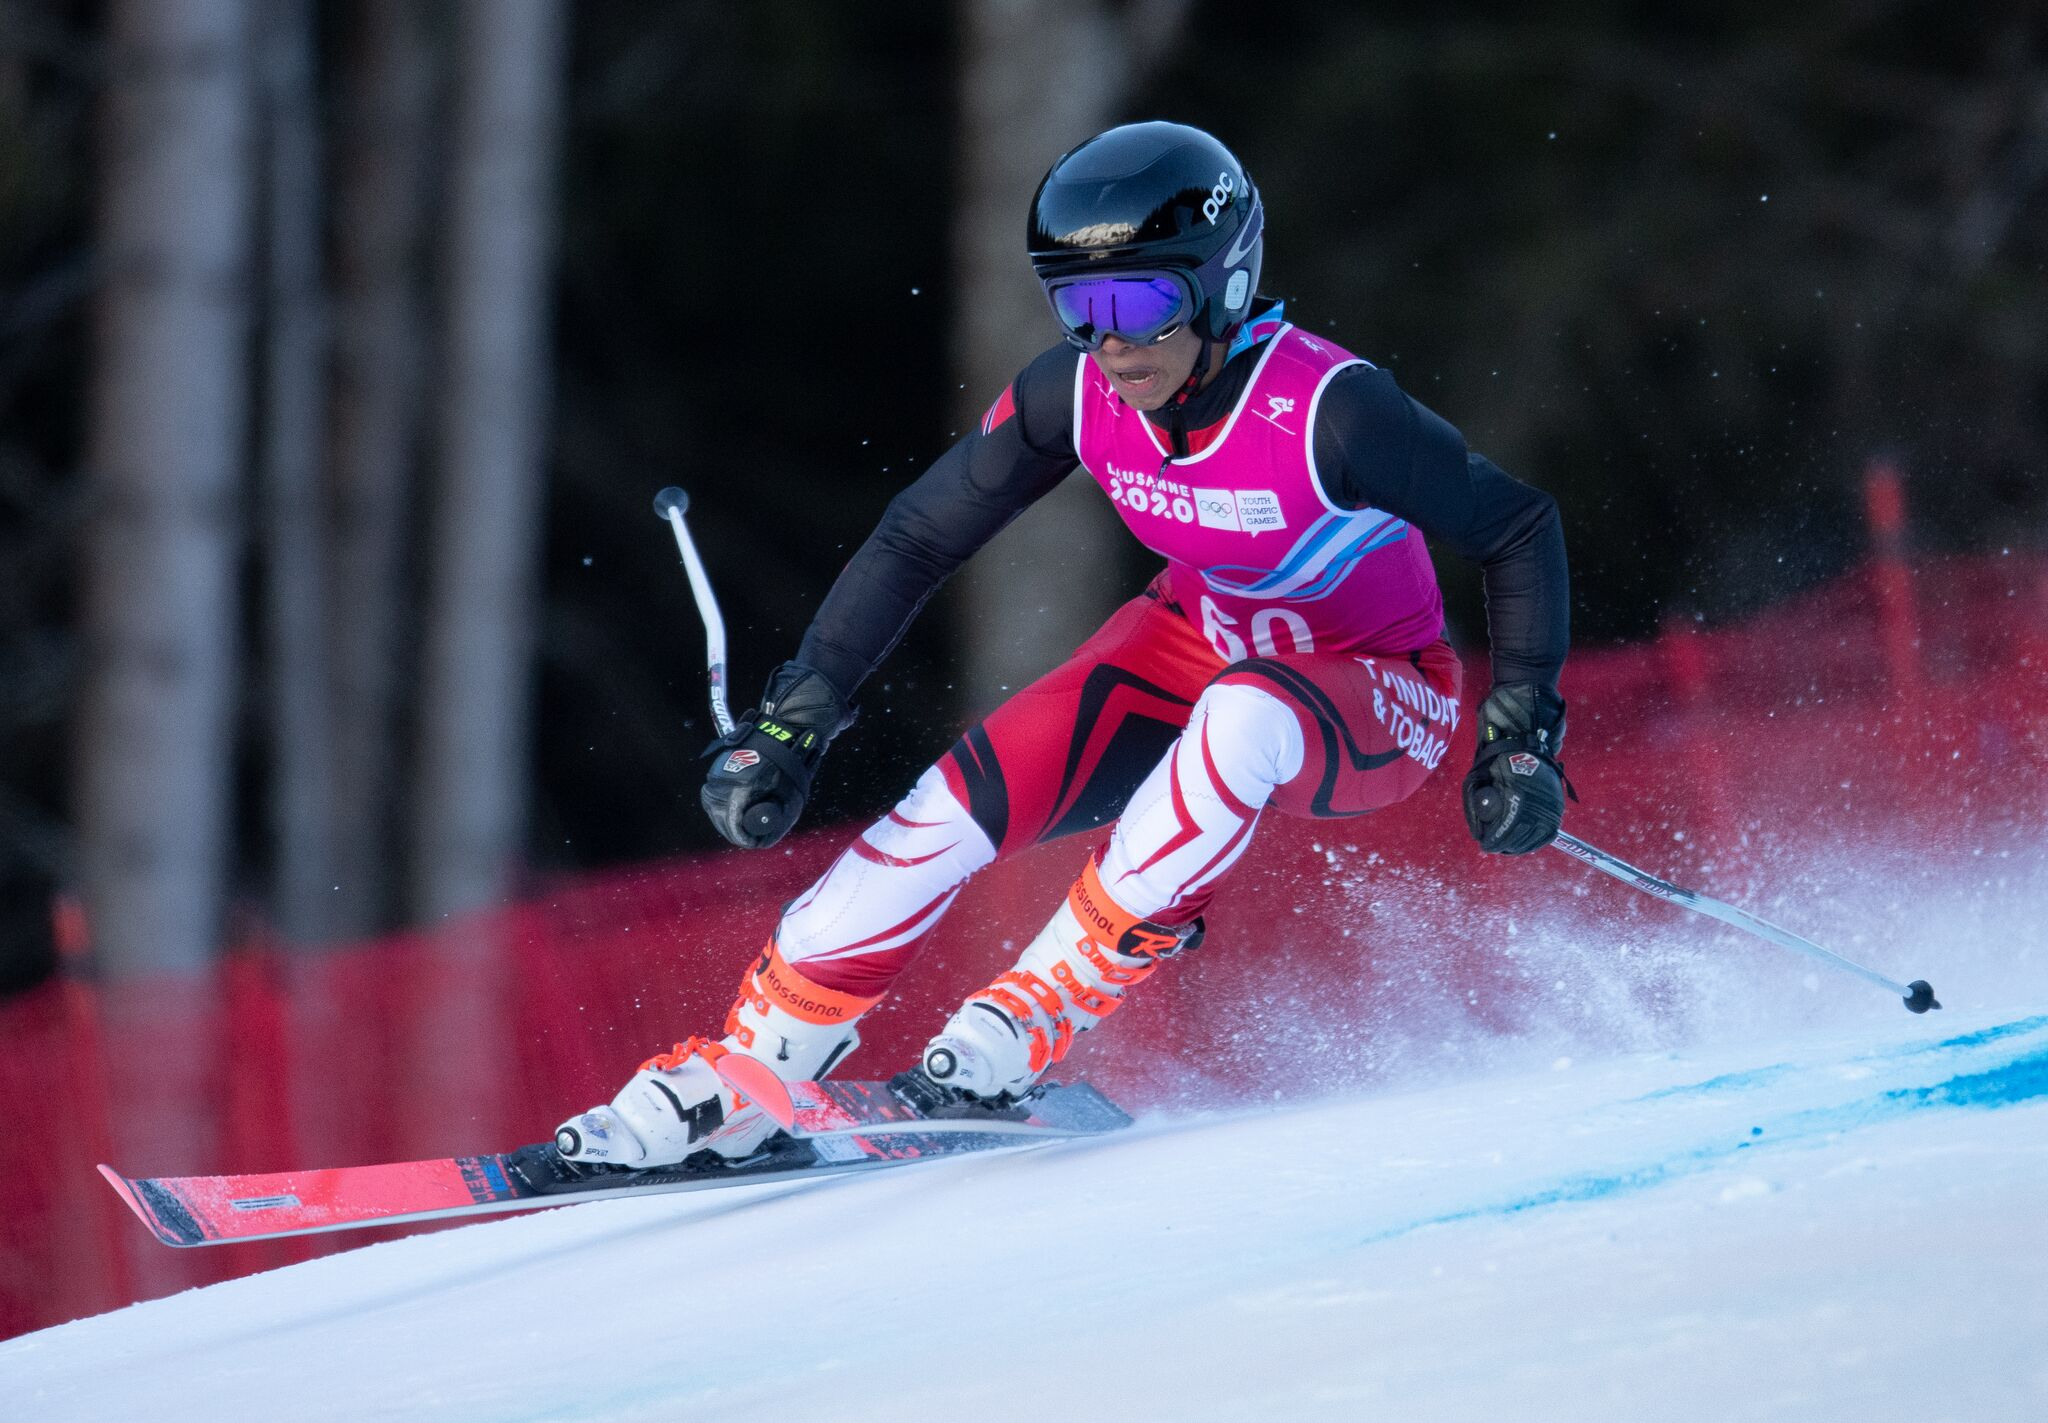 Abigail Vieira competed in the Alpine Skiing Giant Slalom event today.